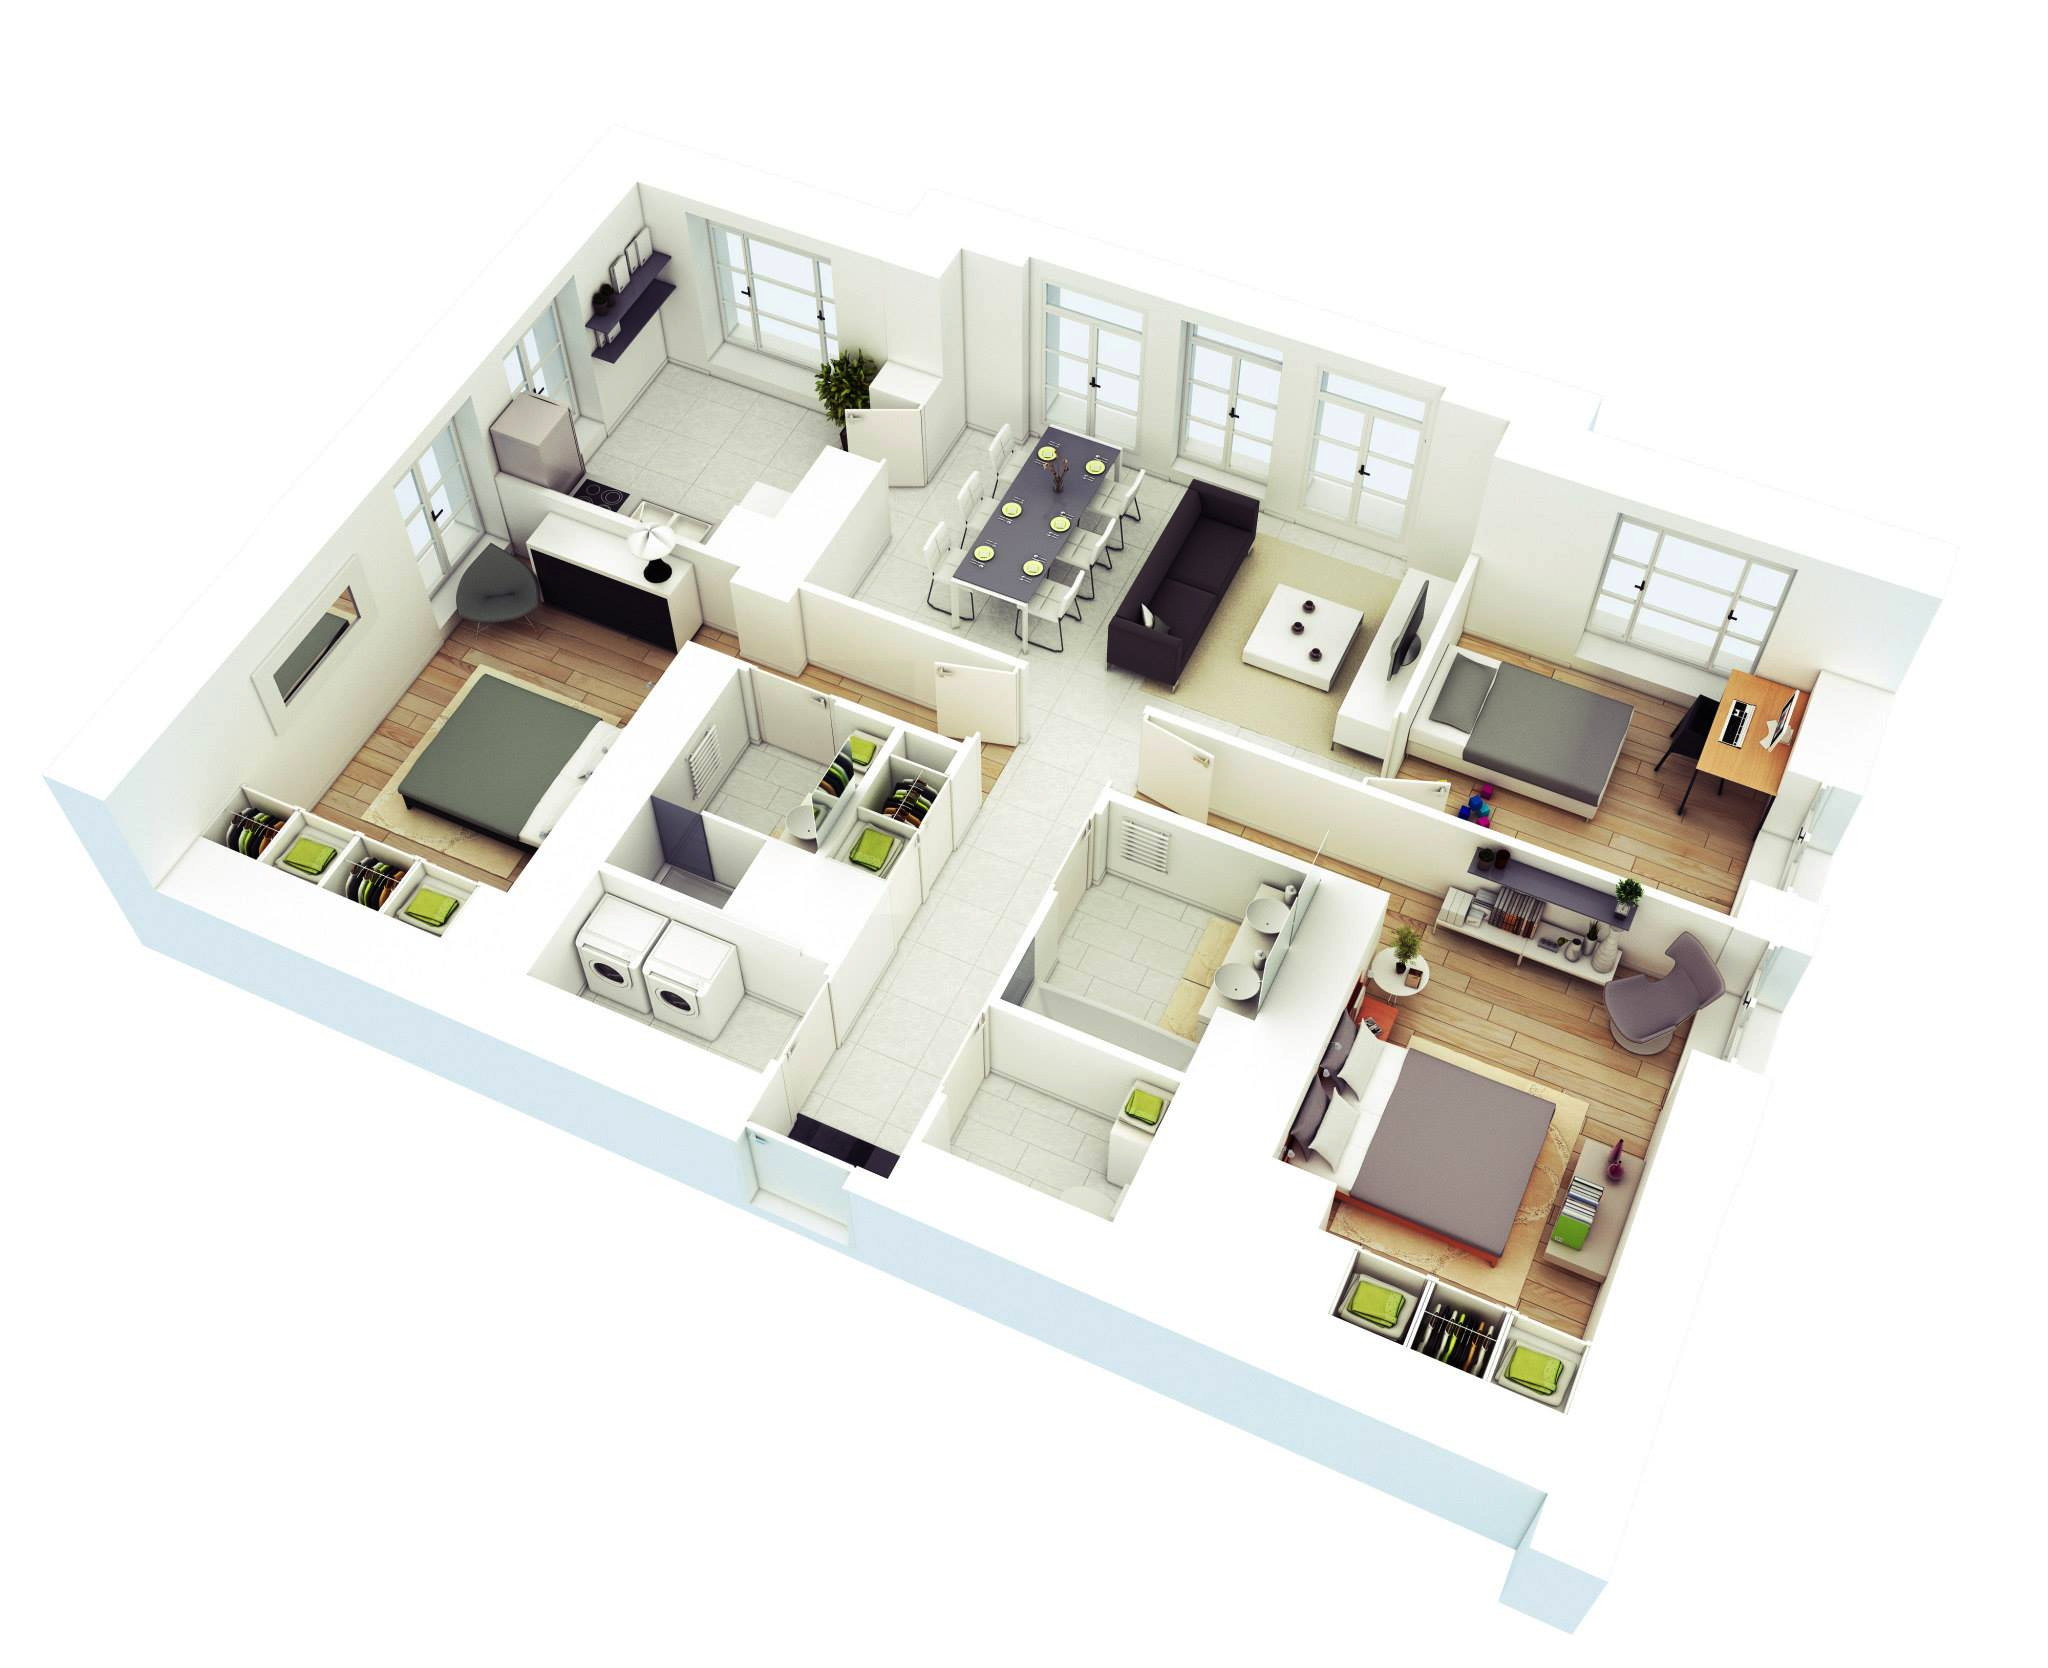 Home Design Plans simple 3d home designs a within designs house wall cut floor plan design floorplans 25 More 3 Bedroom 3d Floor Plans